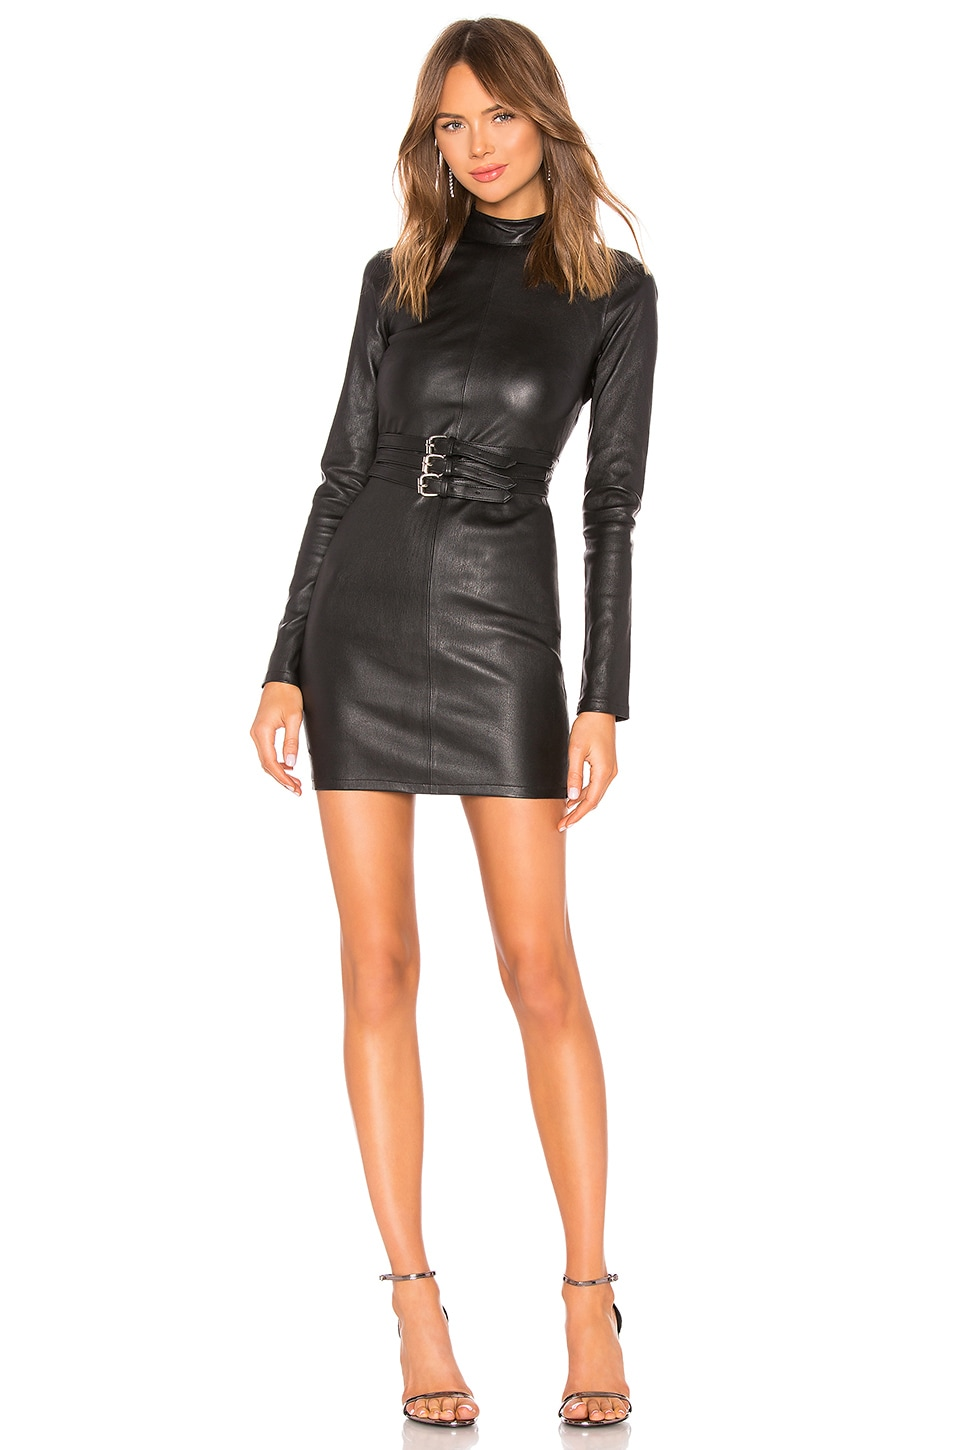 RtA Domino Leather Dress in Night Life 2